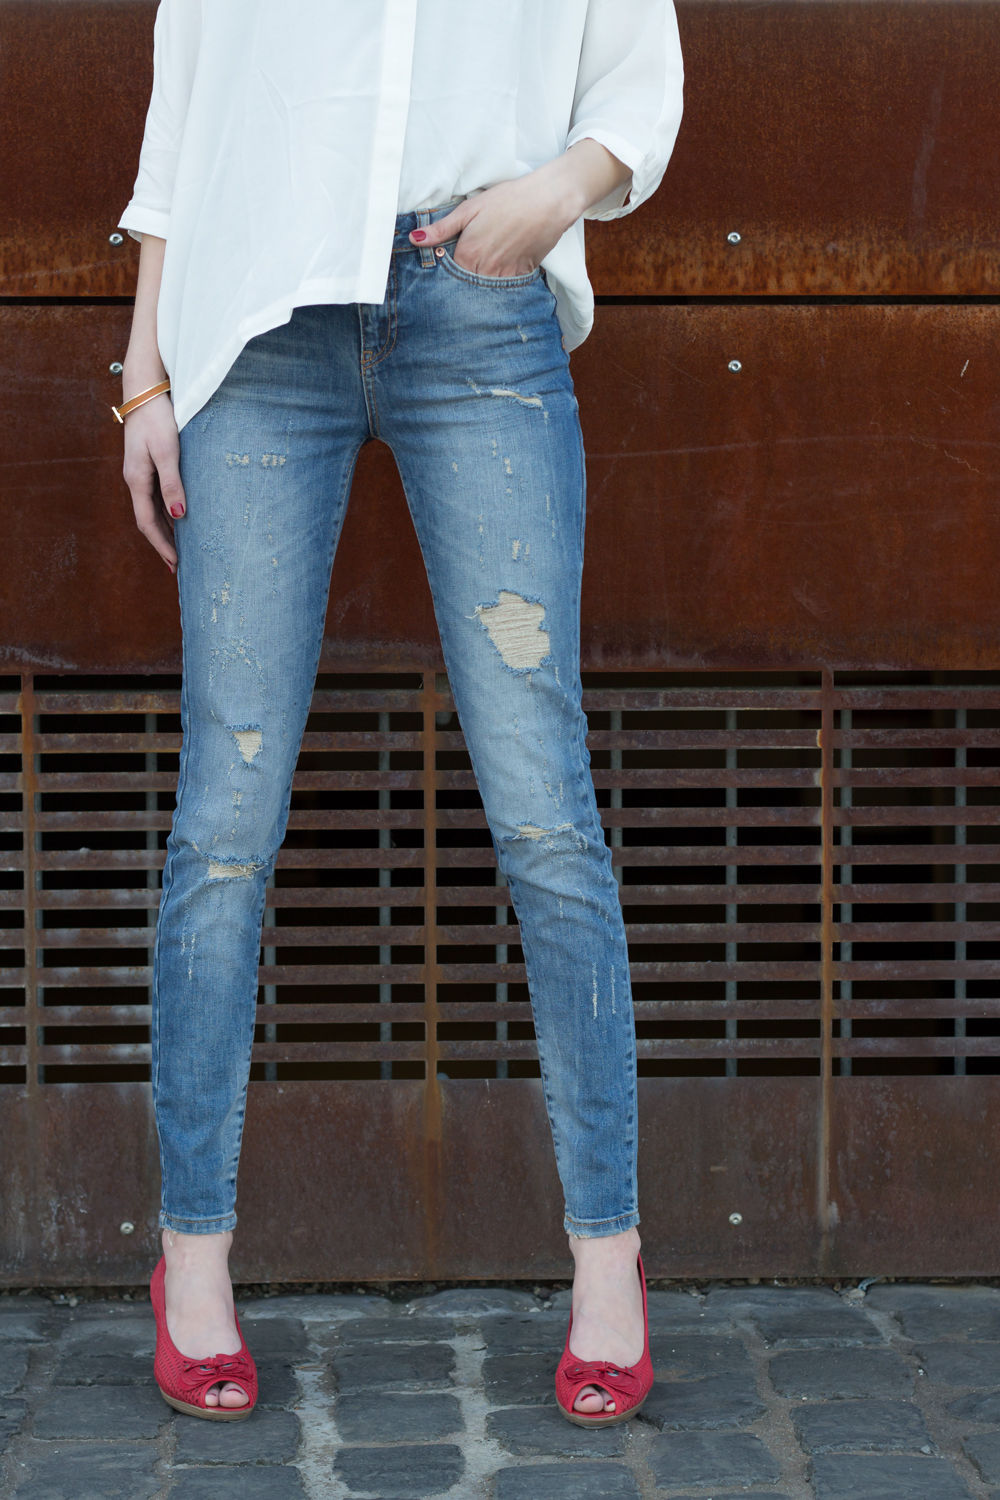 Distressed Jeans from Noisy May Lucy and white blouse from asos